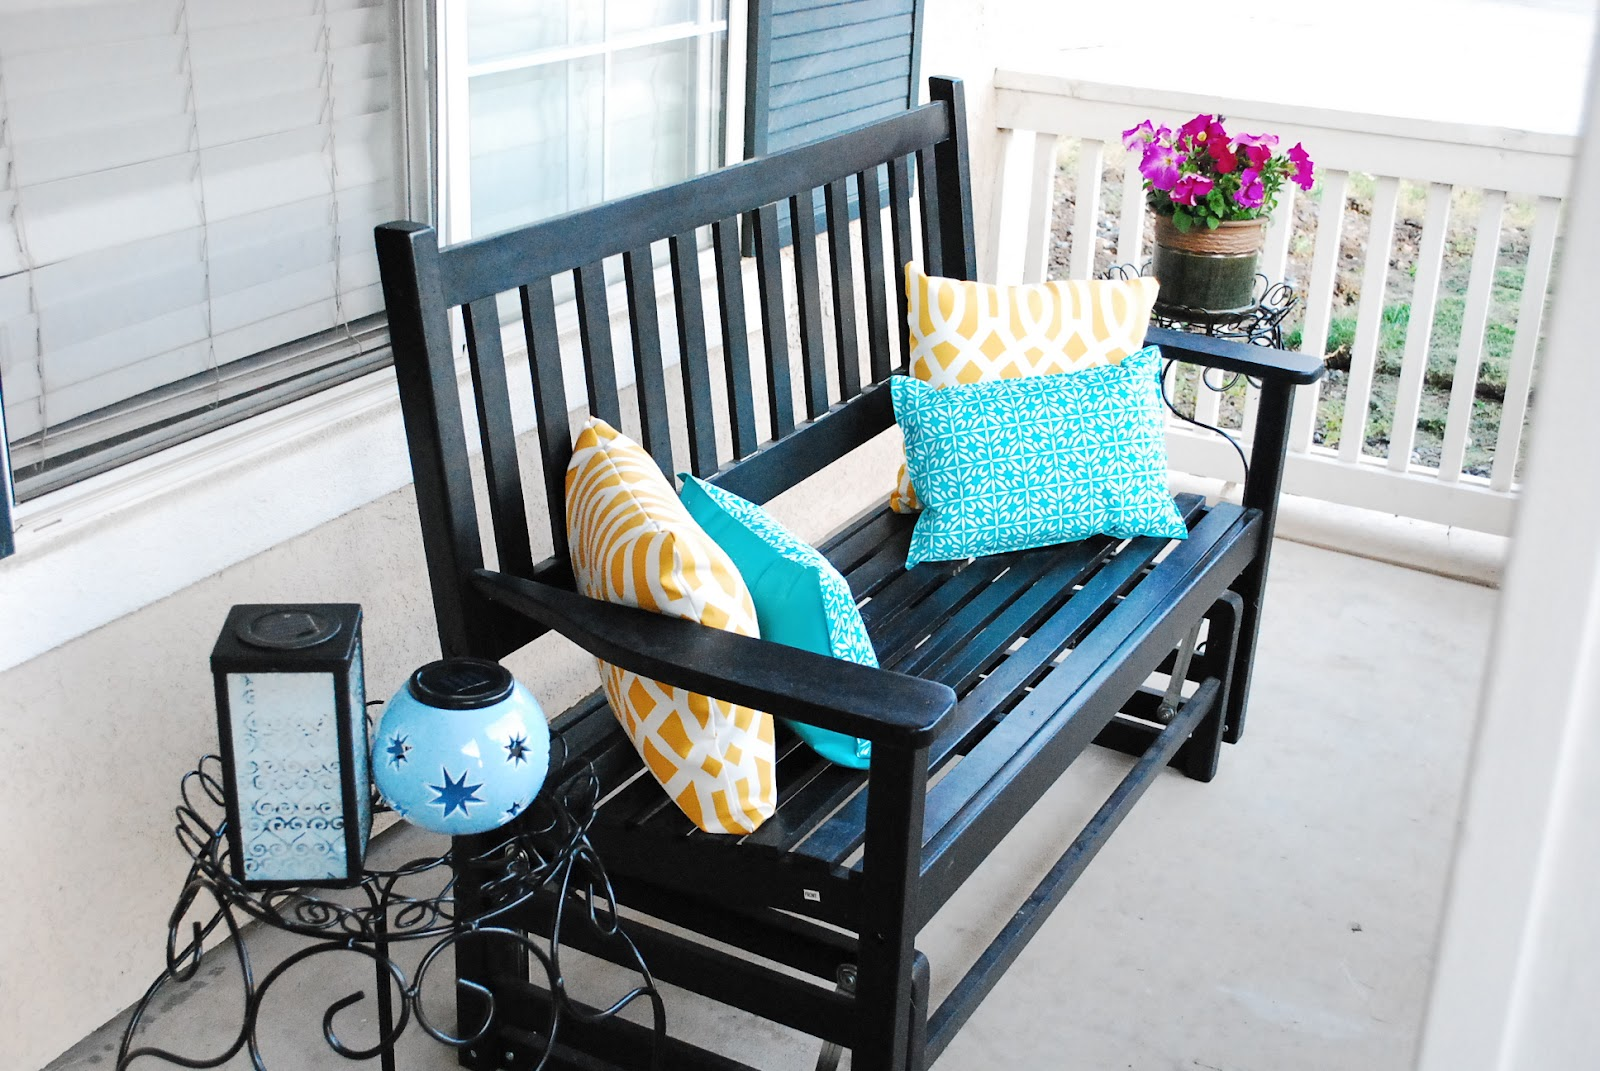 Patio Makeover On a Budget on Patio Makeovers On A Budget id=95633